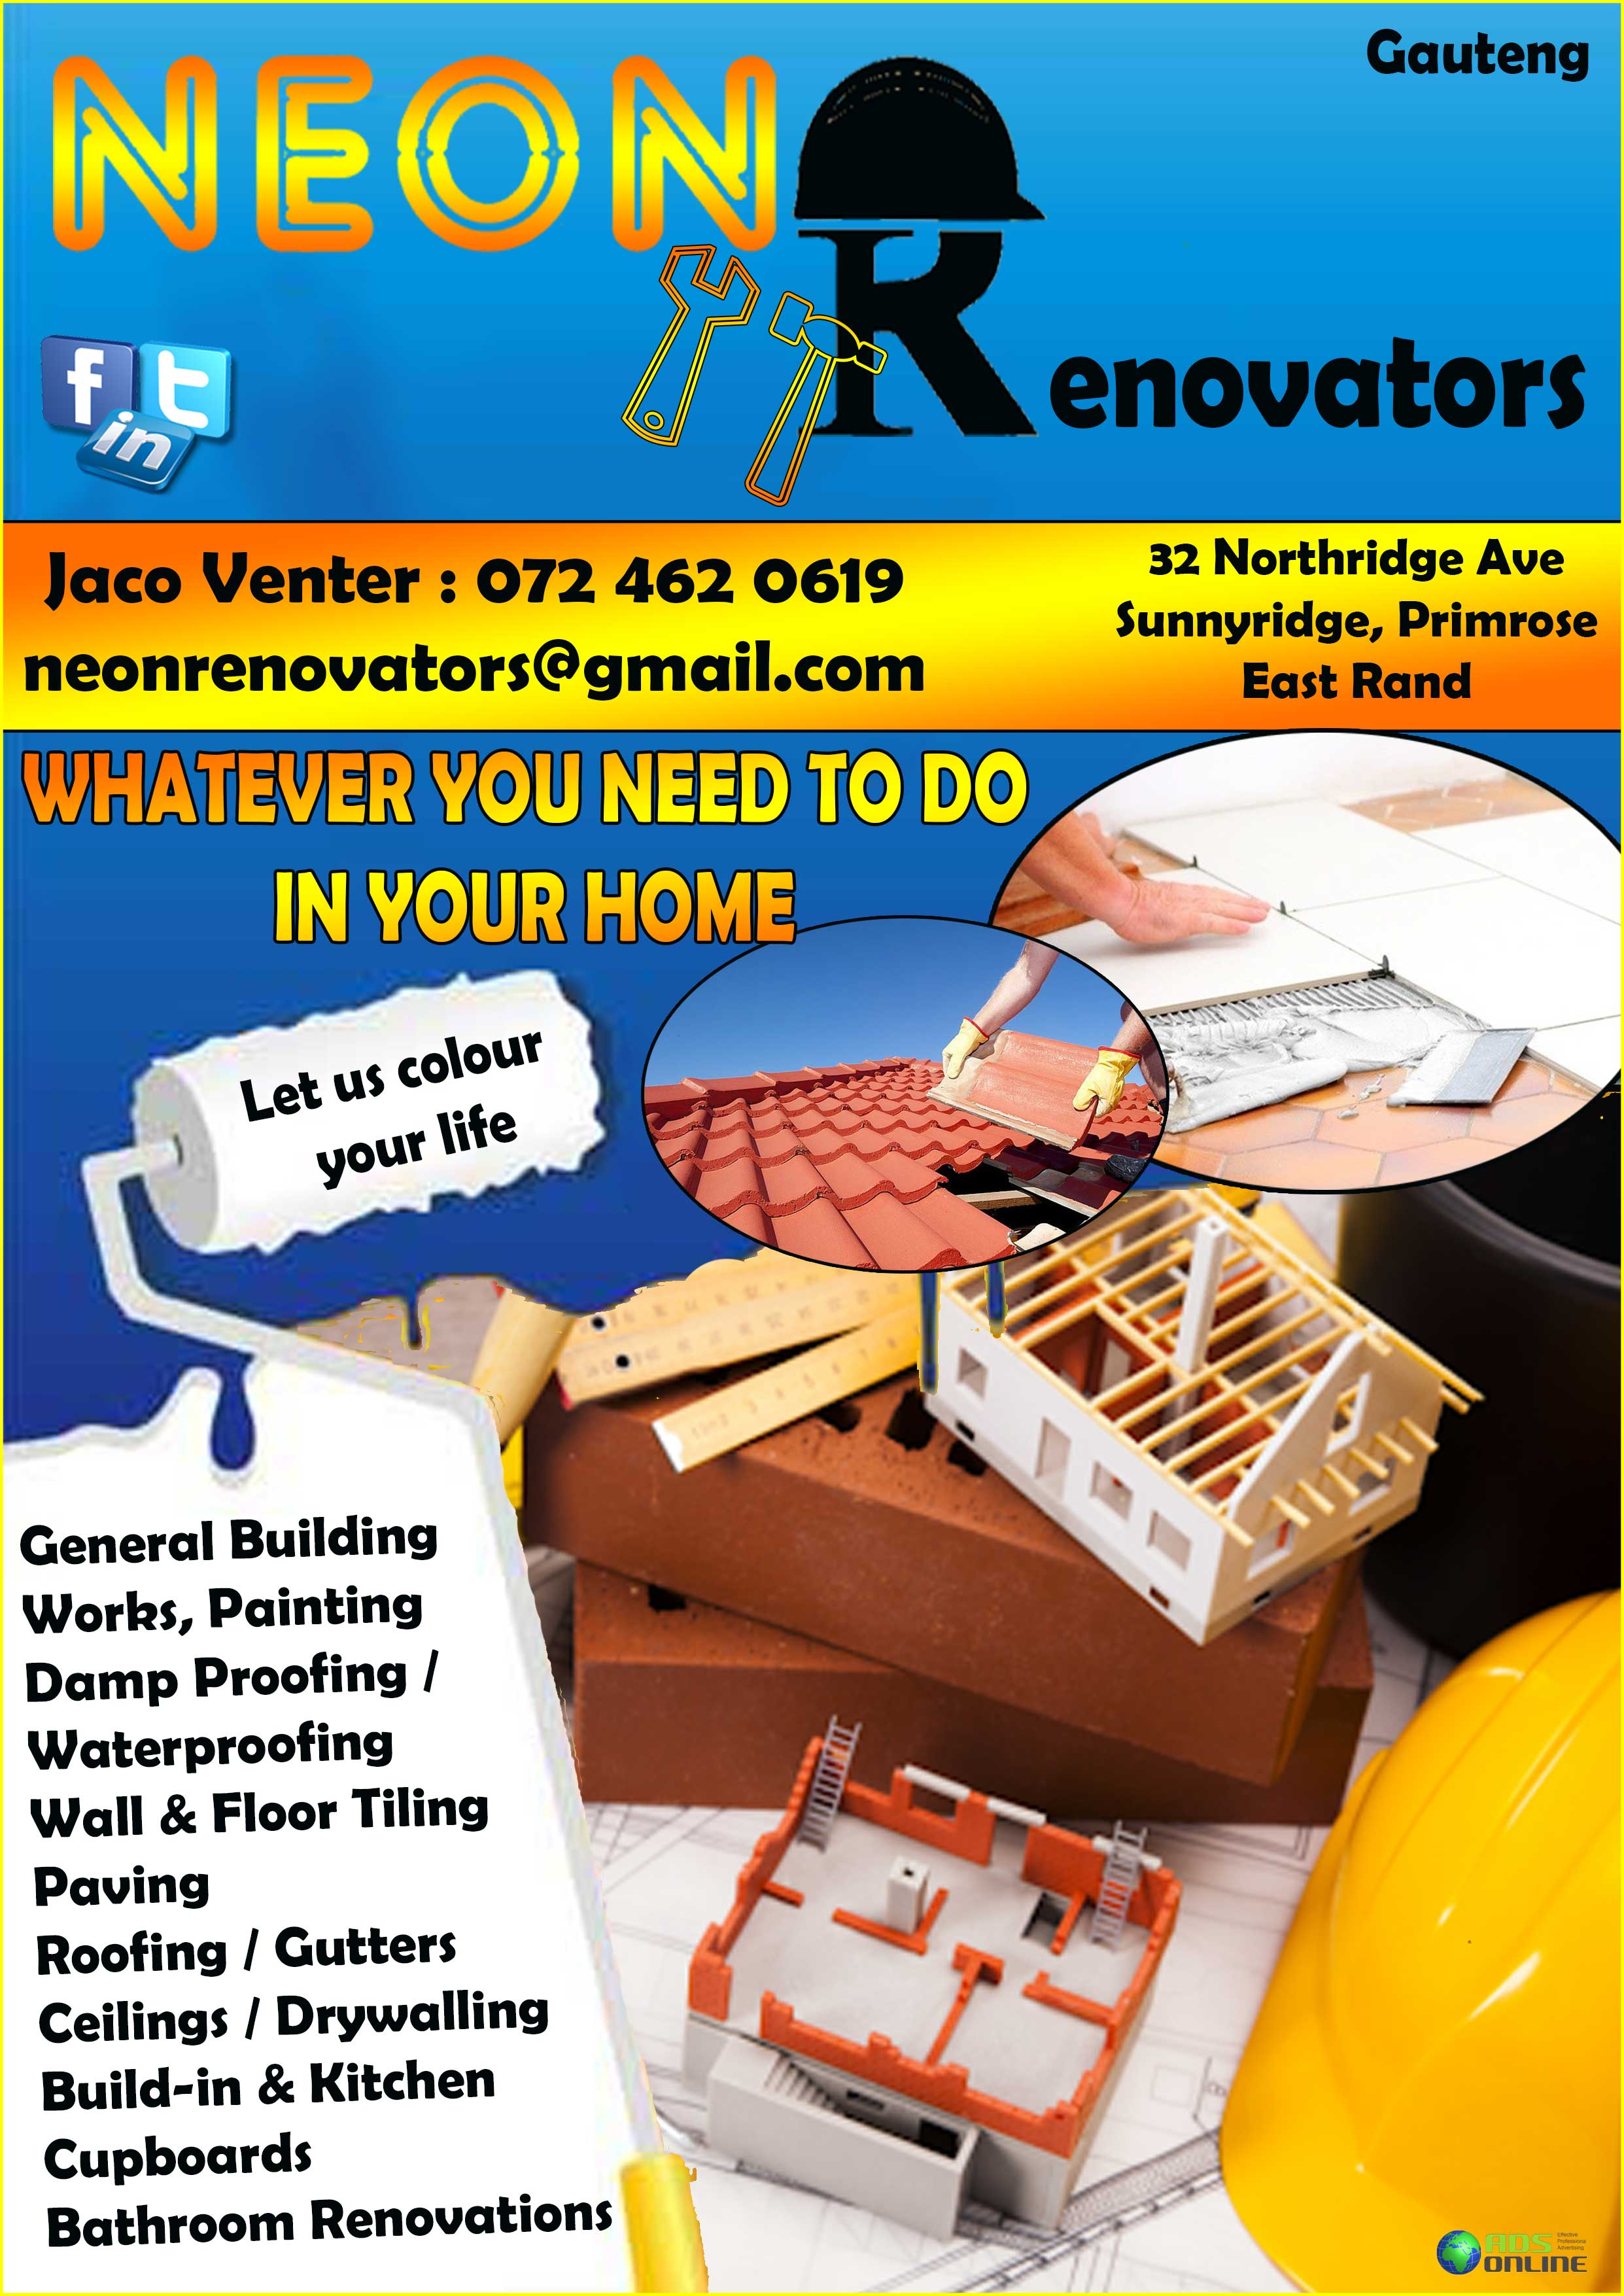 Neon Renovators – Home Renovations | East Rand, Gauteng